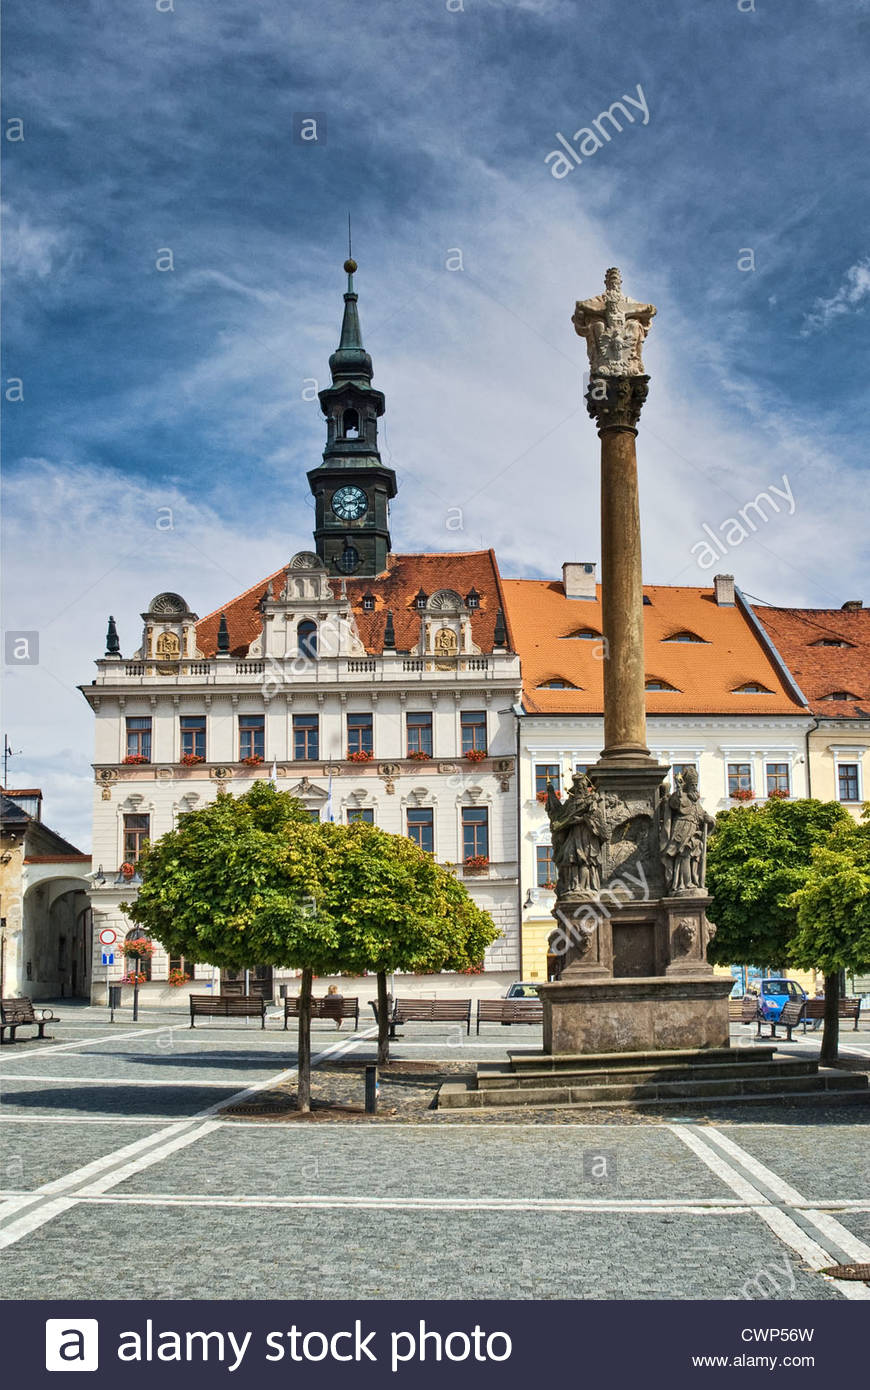 Plague column and town hall at Náměstí Masaryka in Česká Lípa in Liberecky kraj (Liberec Region), Czech Republic Stock Photo